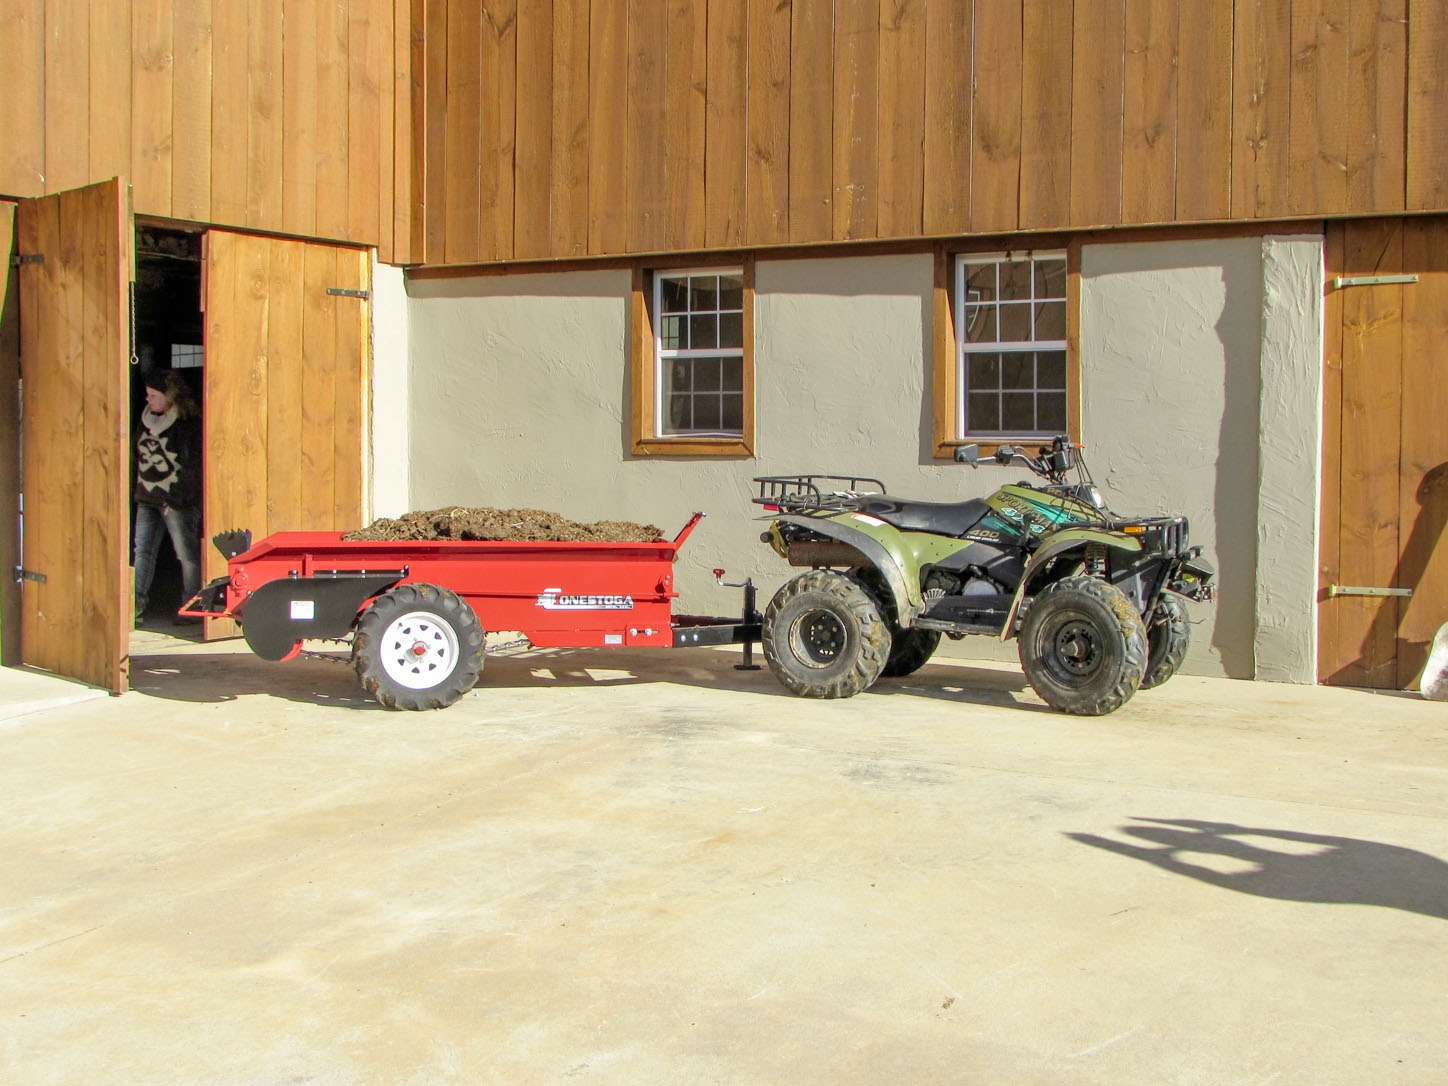 ground driven manure spreader being pulled by atv outside horse barn